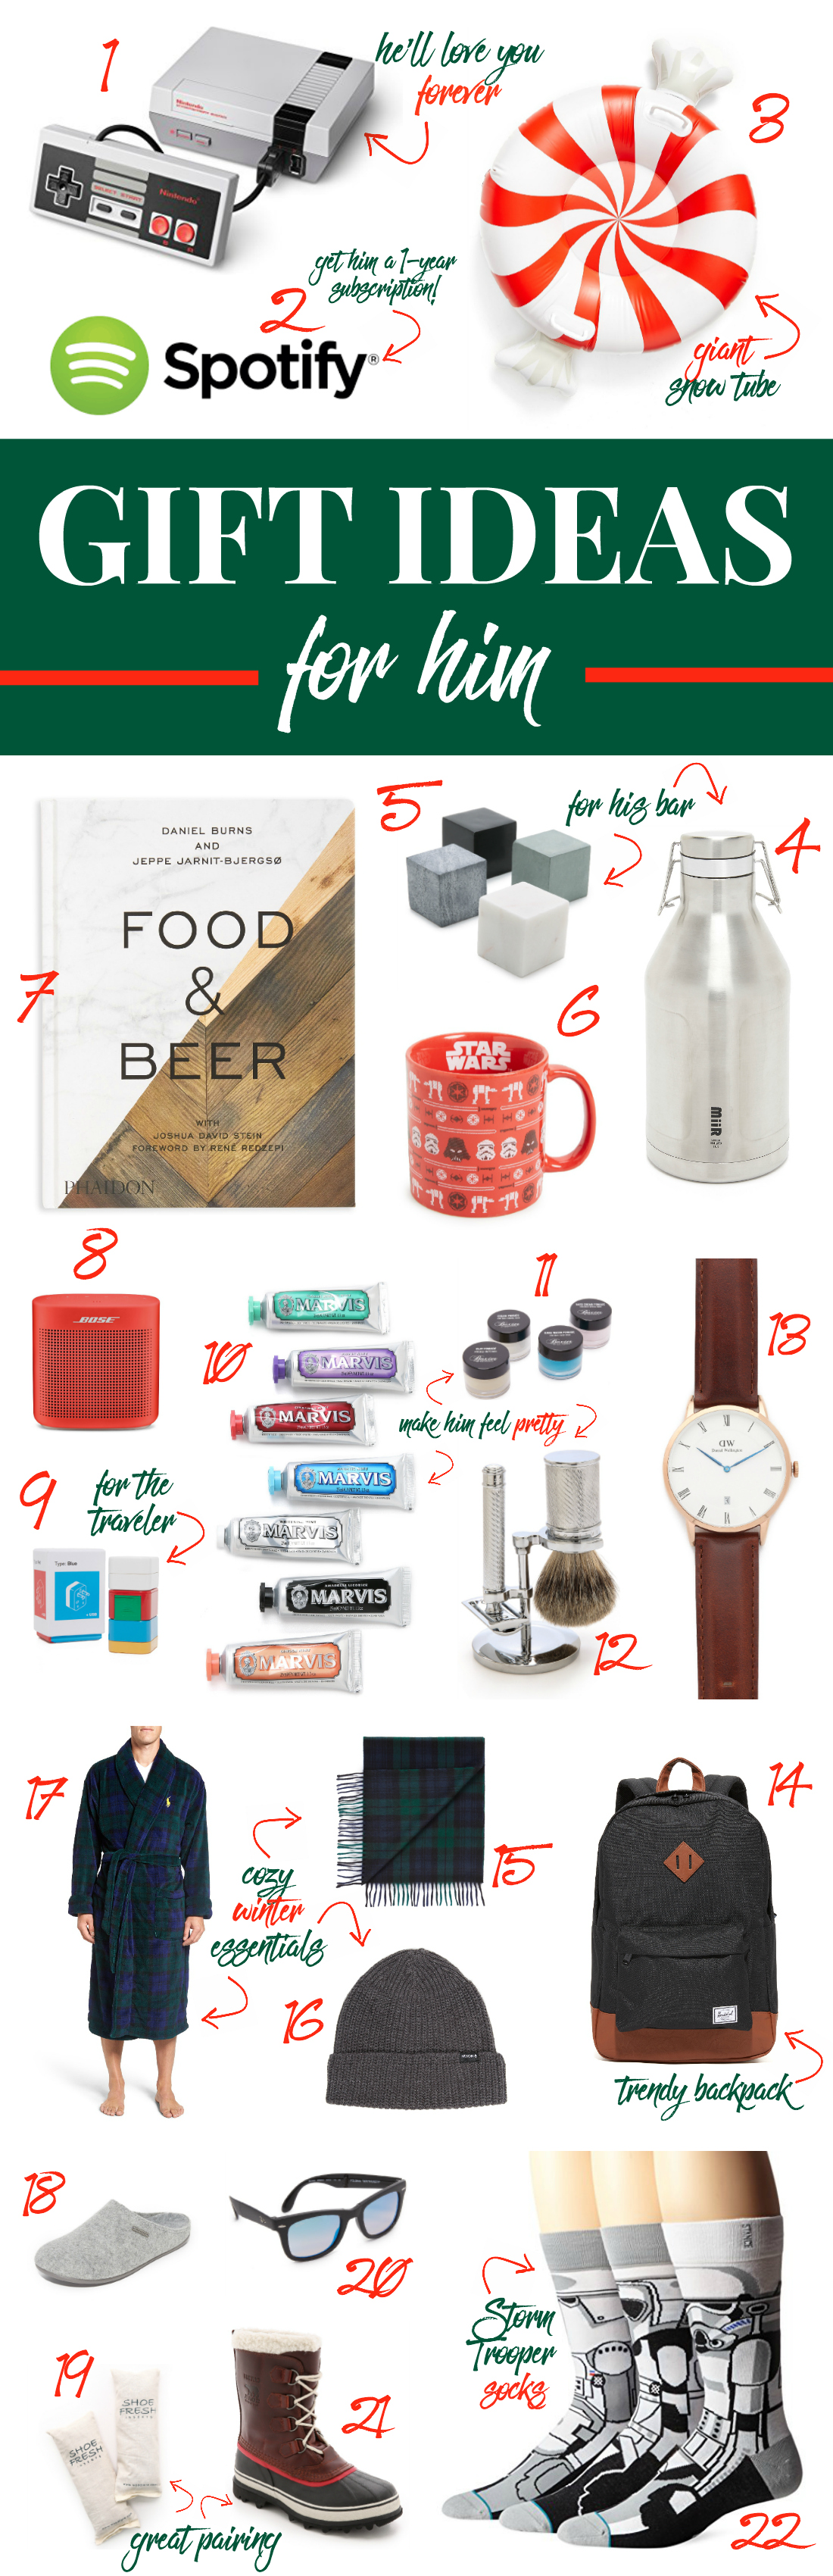 22 Awesome Gift Ideas For Hard To Buy For Guys Diary Of A Debutante